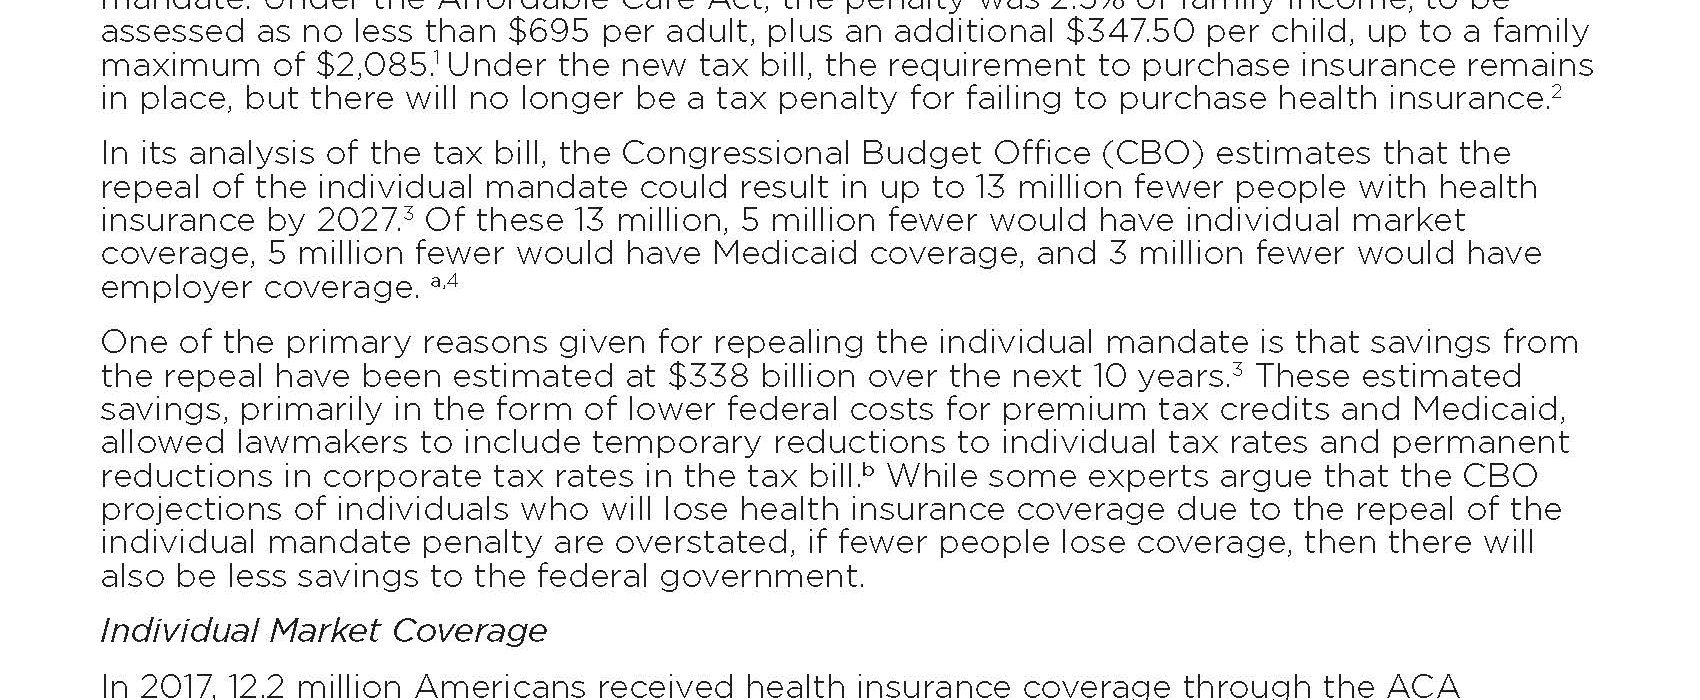 Issue Brief: Impact of the Individual Mandate Penalty Repeal